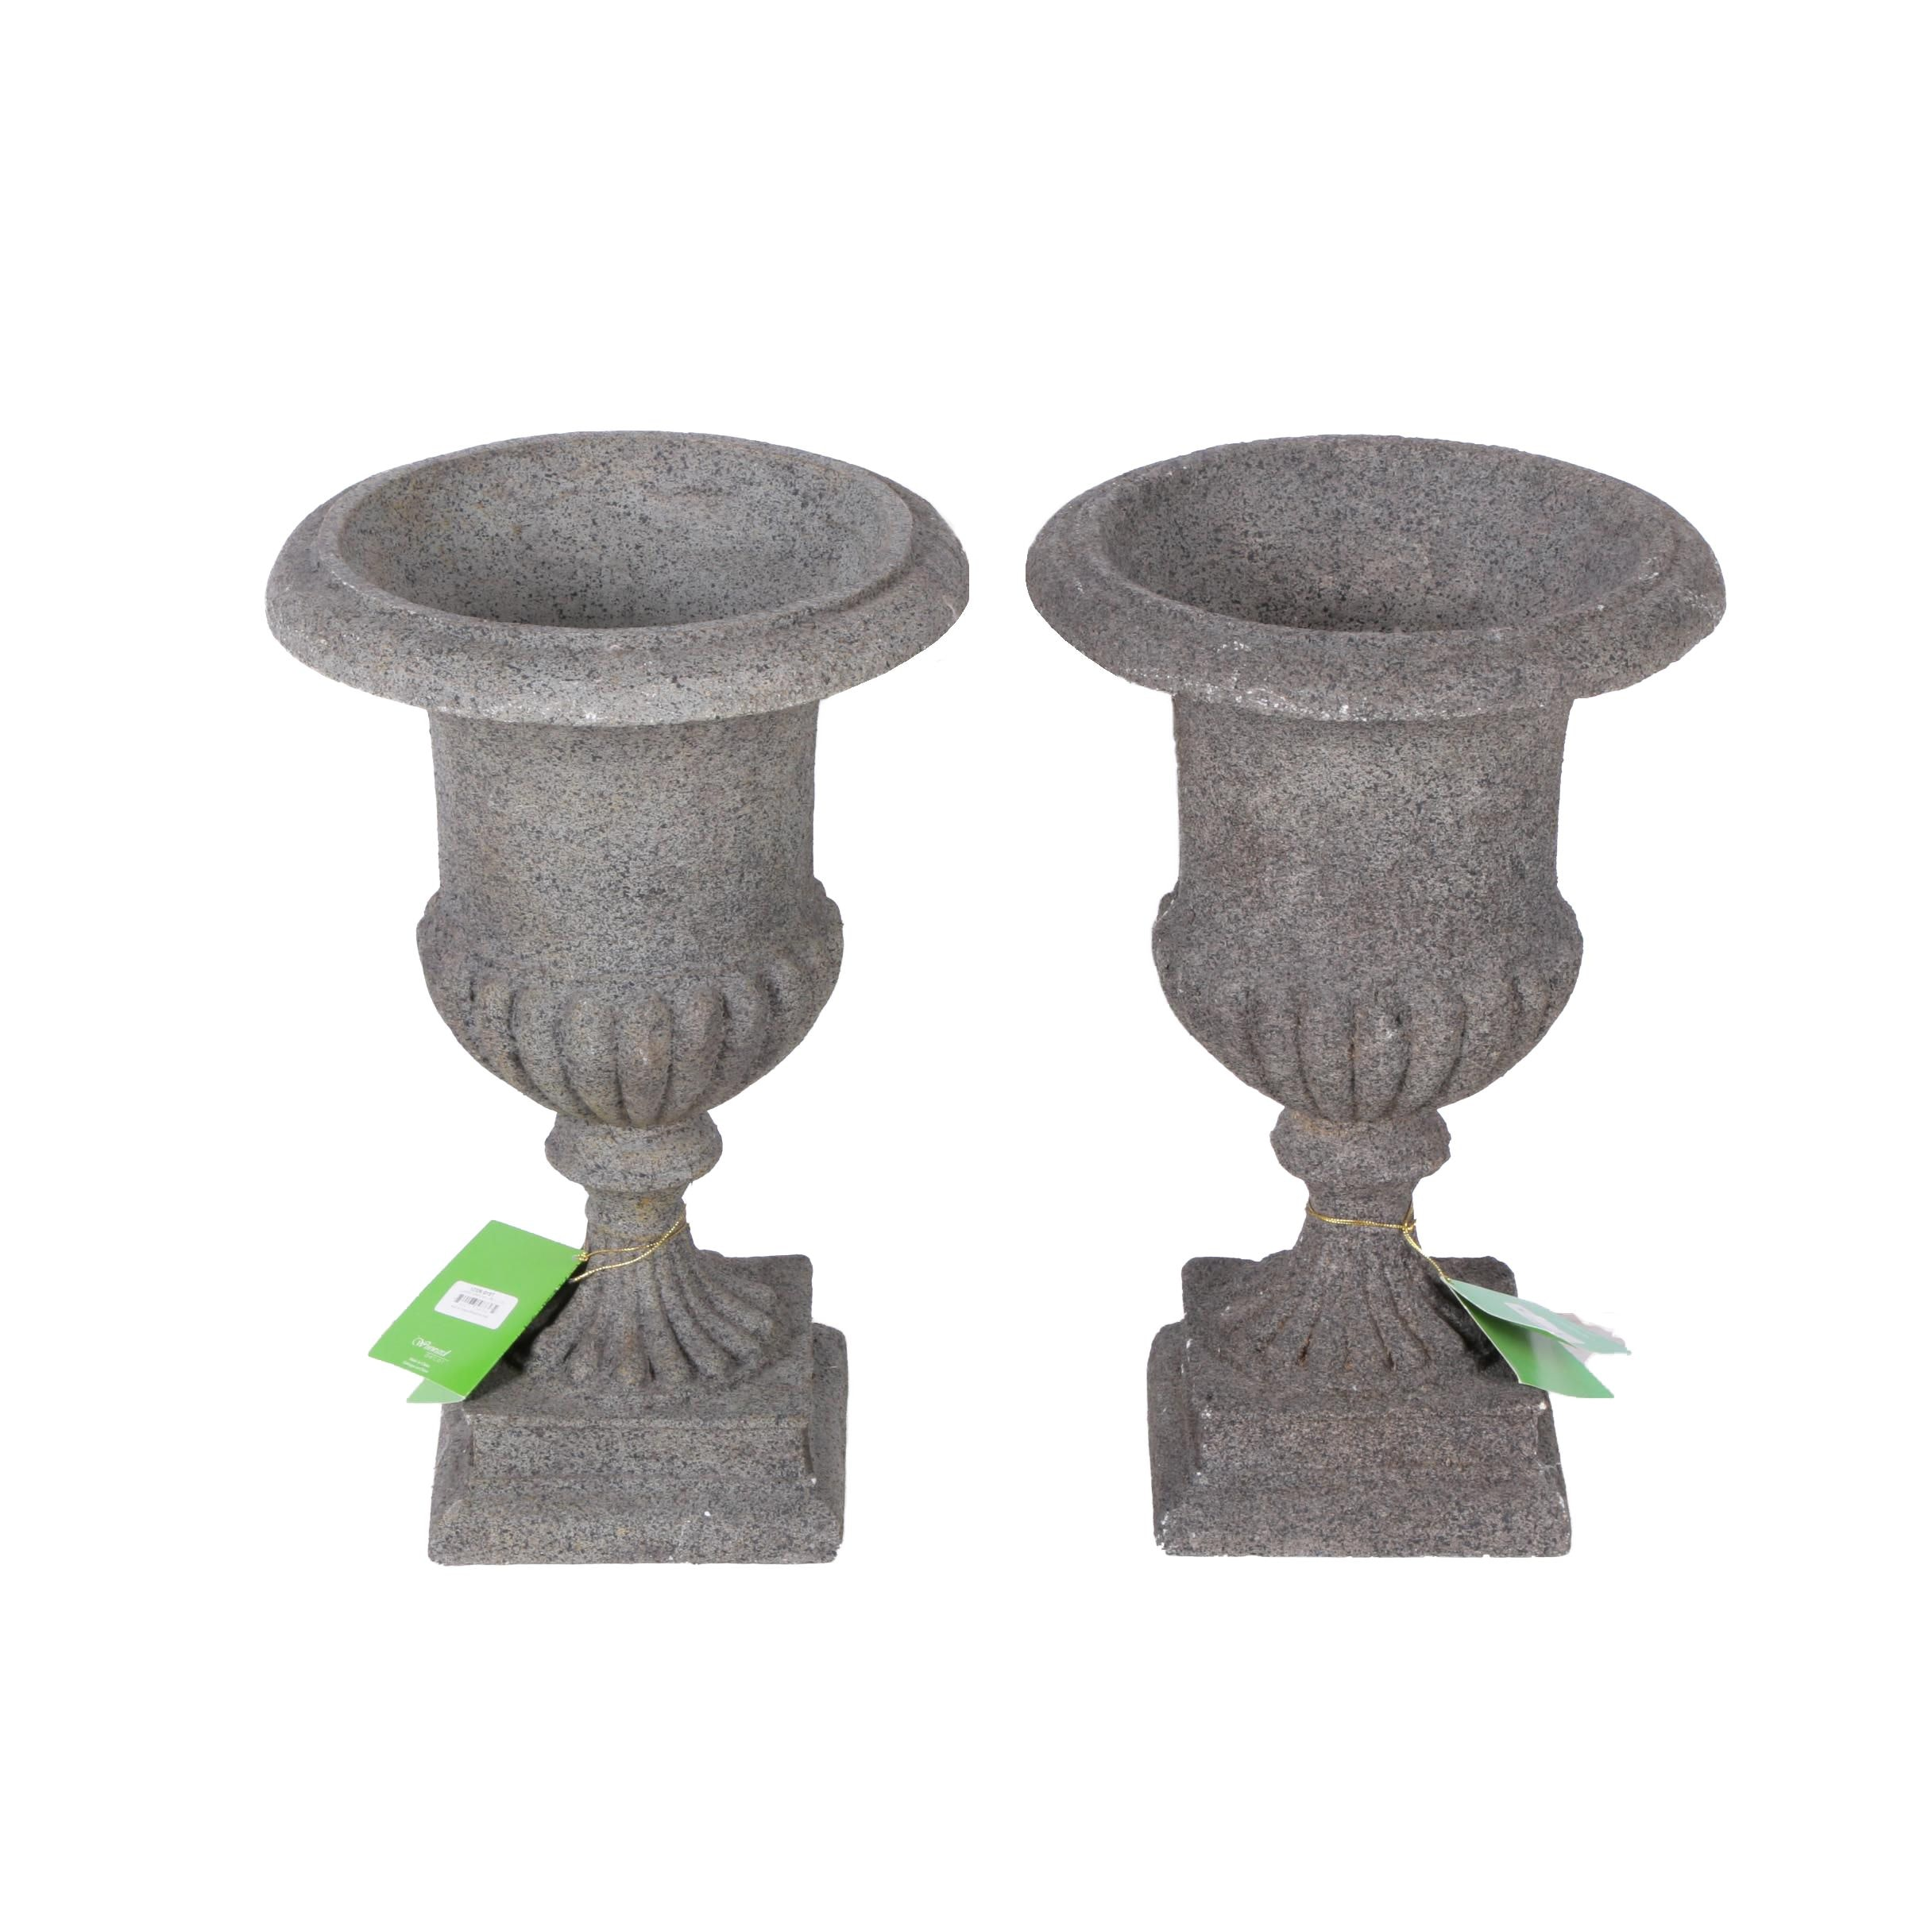 Pair of Resin Urn Shaped Footed Planters in Painted Stone Finishes